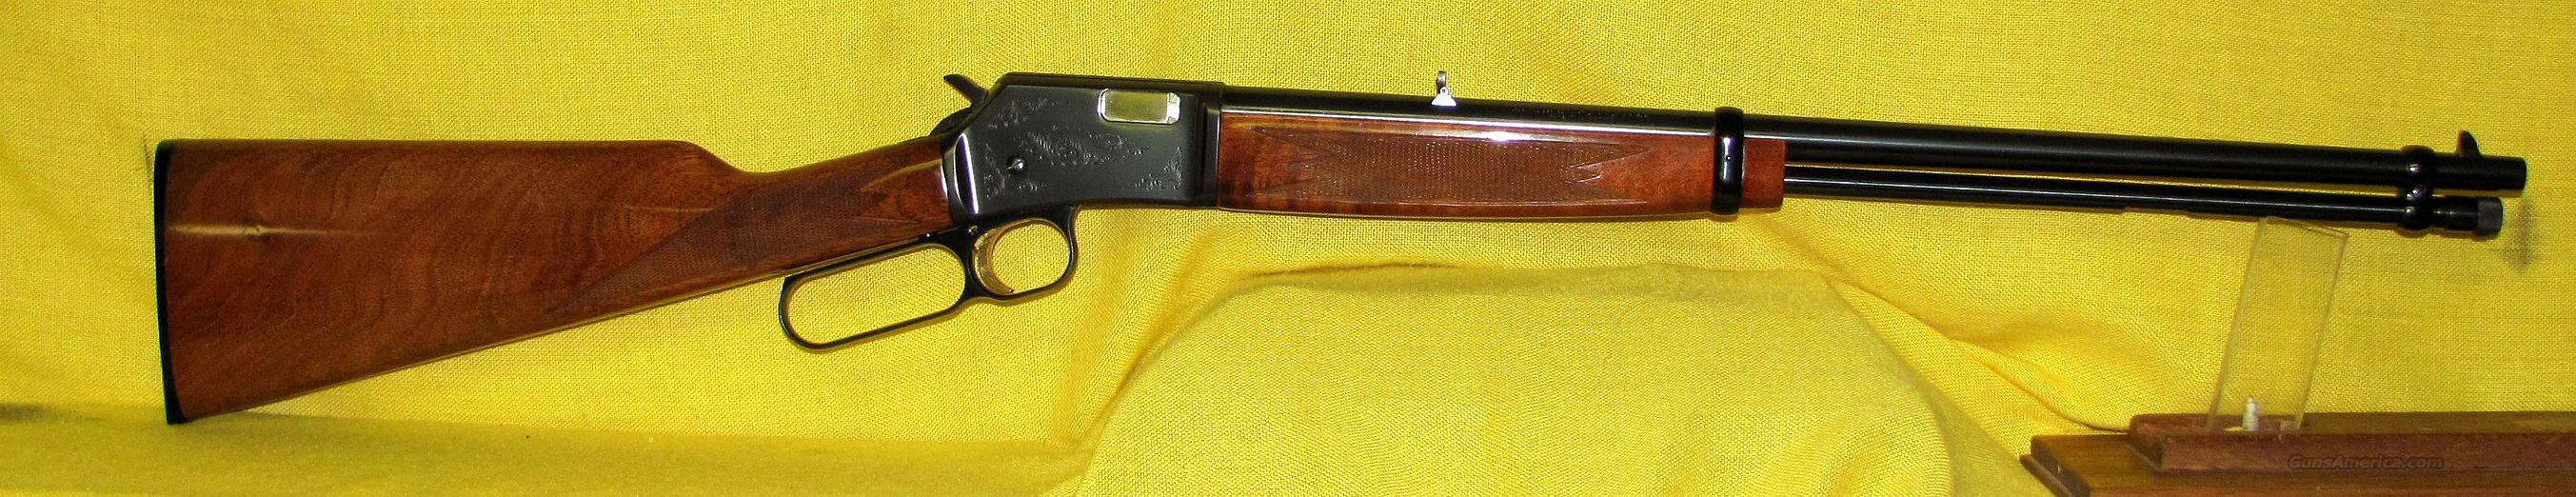 "BROWNING BLR 22 GRADE II .22LR 20""BBL  Guns > Rifles > Browning Rifles > Lever Action"